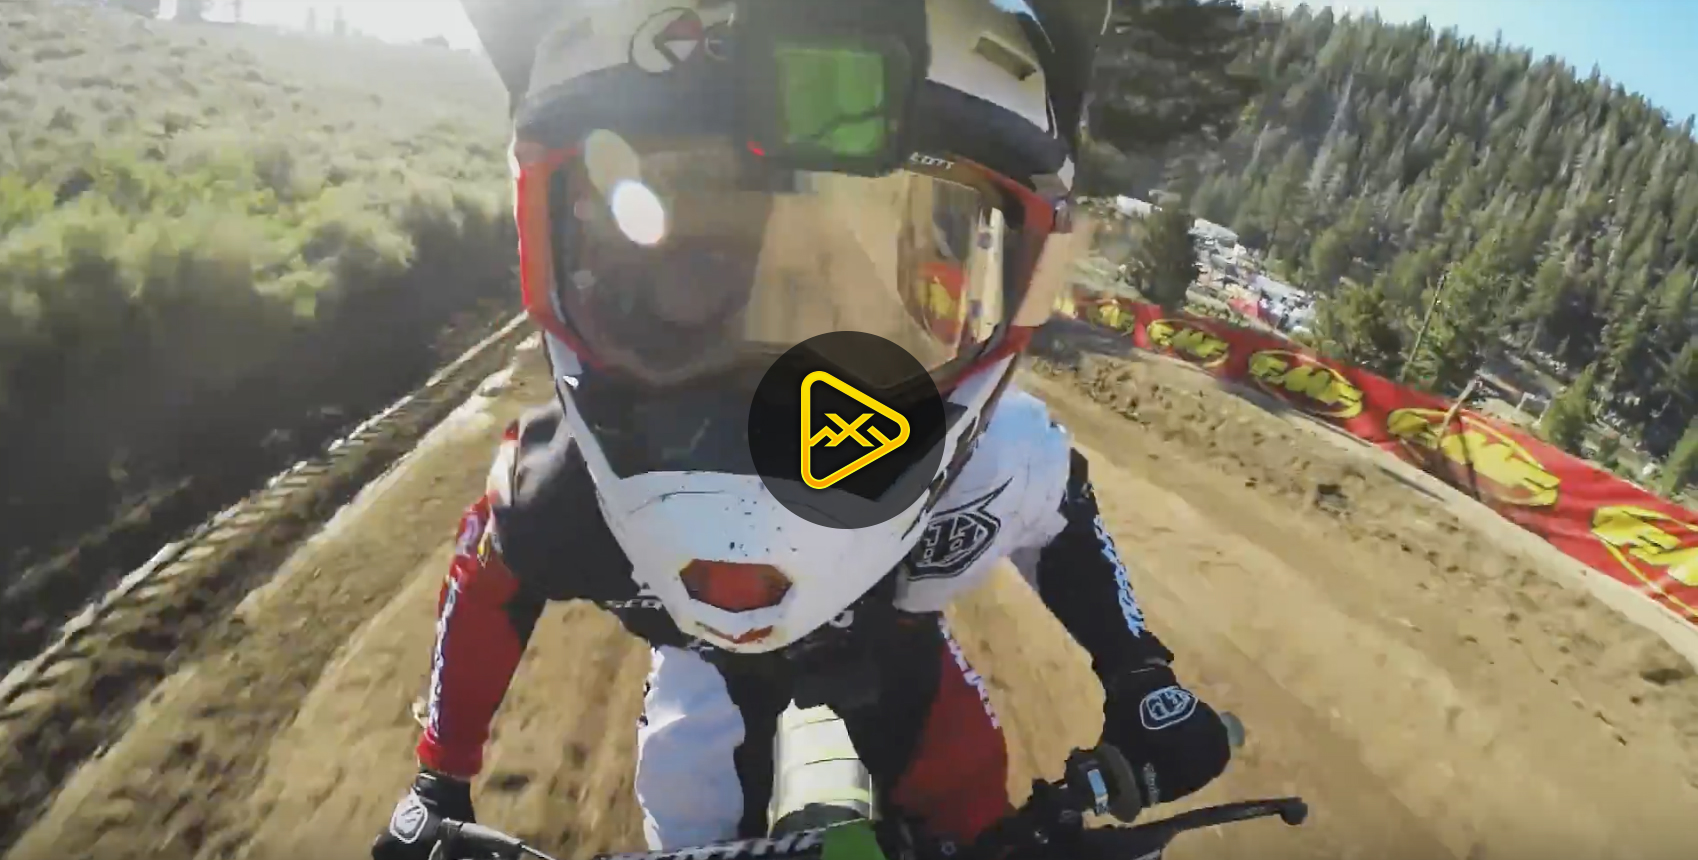 Mammoth Motocross Track Preview with Ryder DiFrancesco